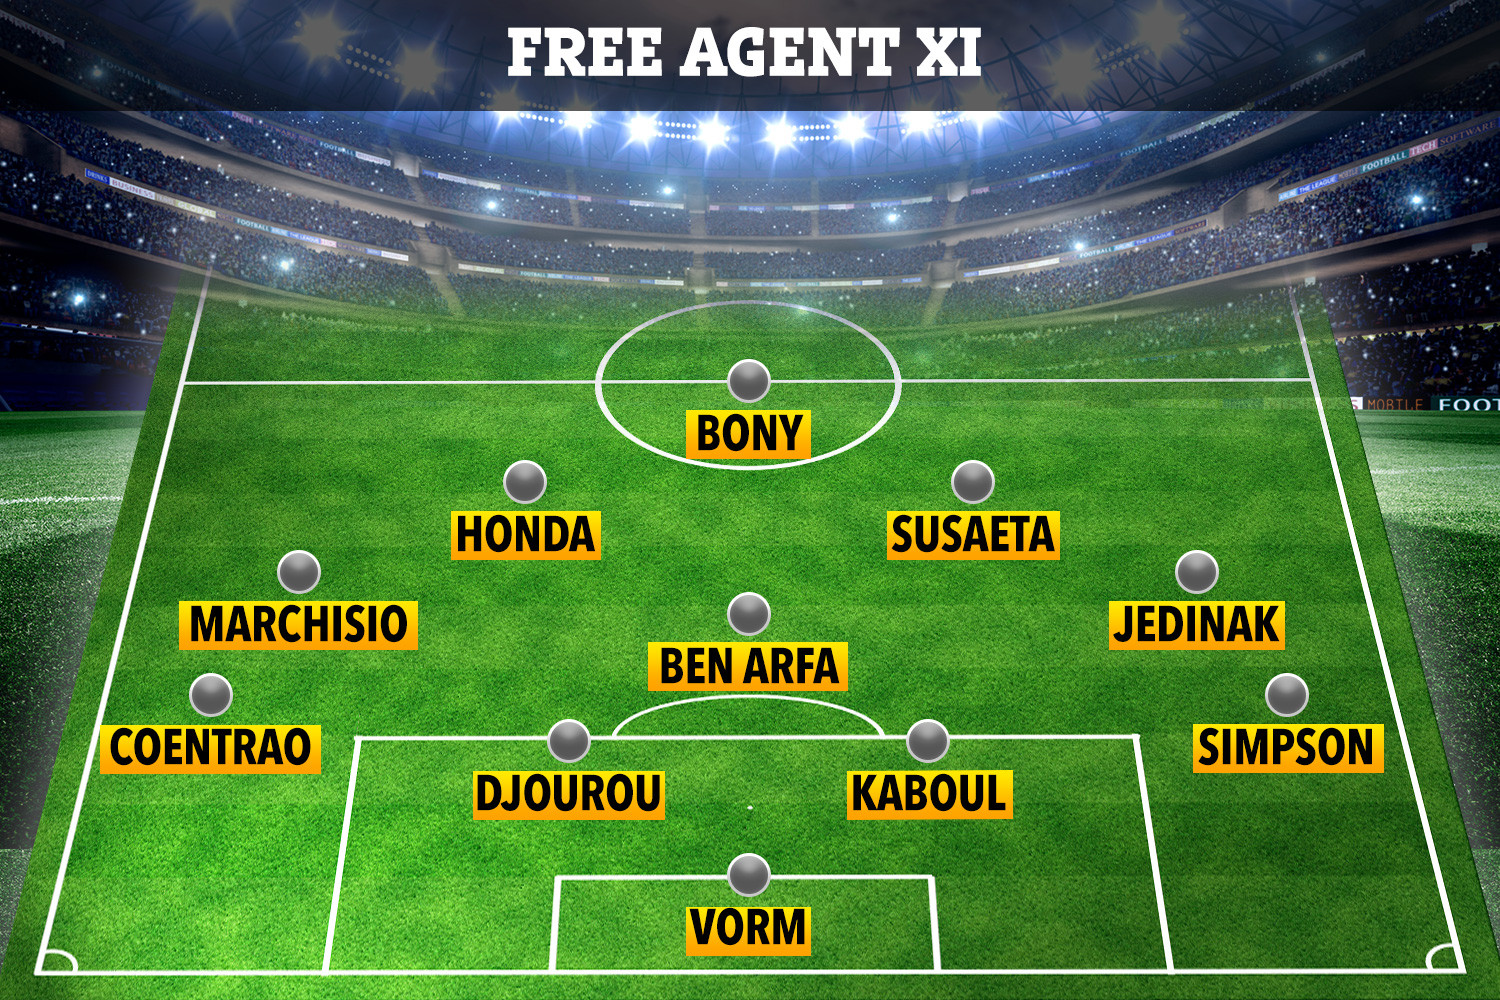 SPORT-PREVIEW-TEAM-LINE-UP-FREE-AGENT-XI.jpg